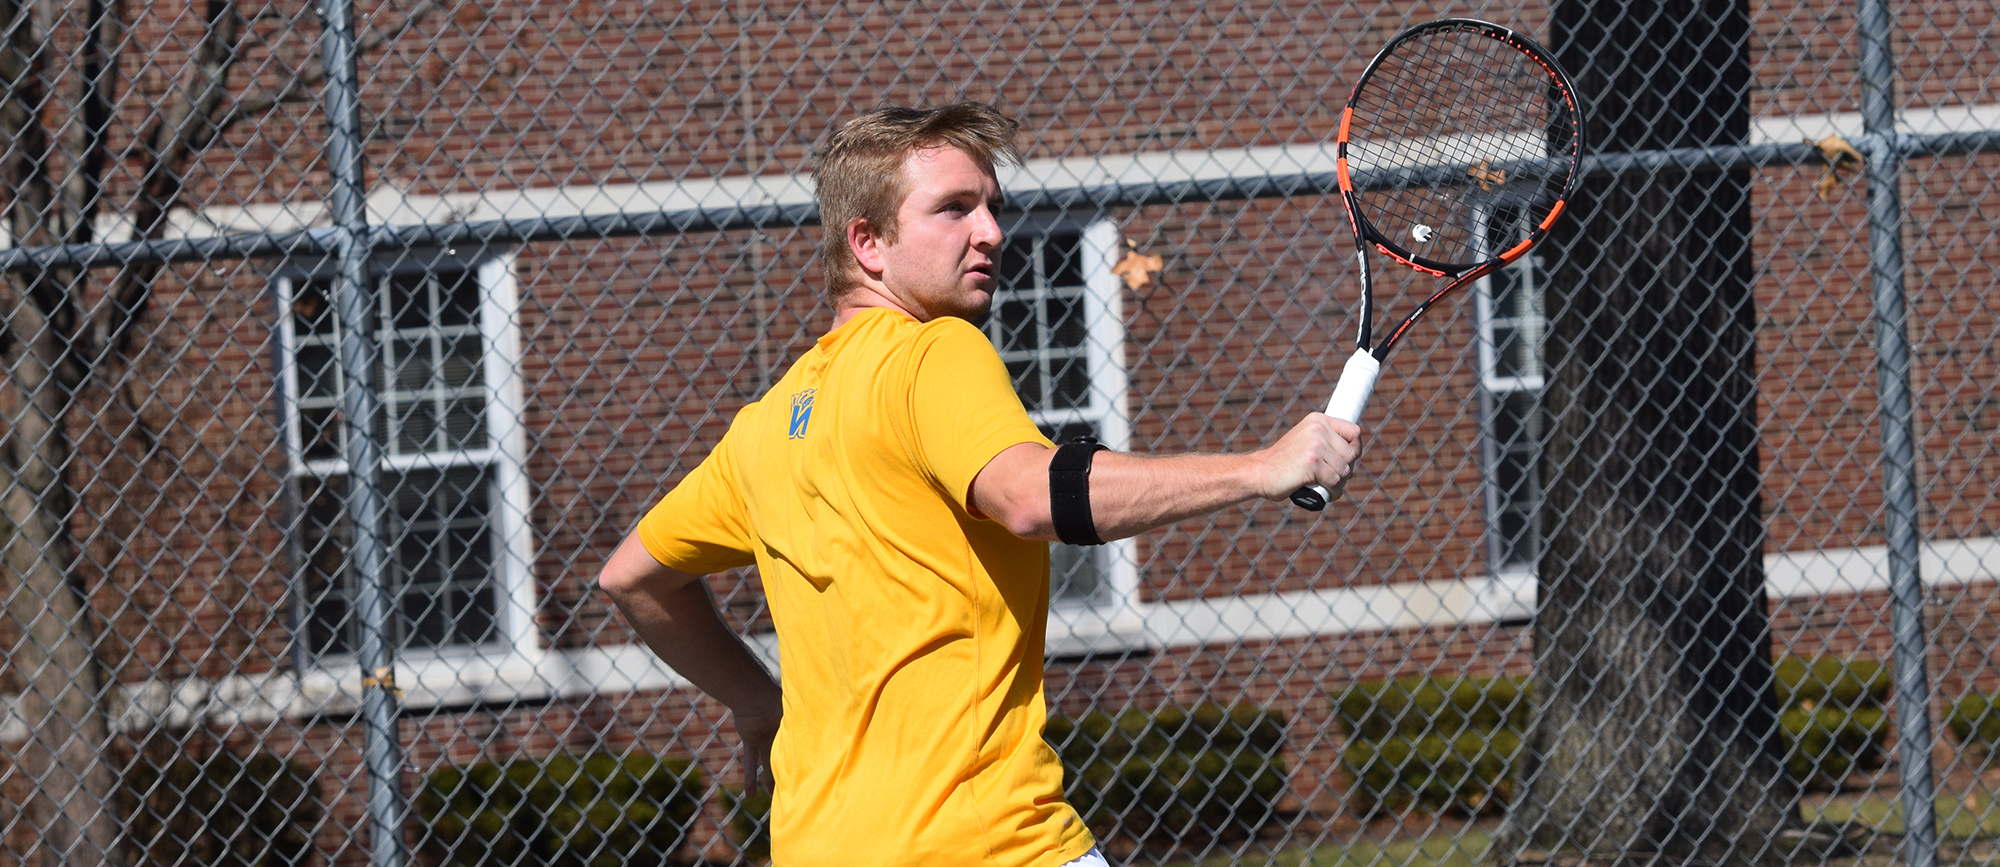 Freshman Max Gordon posted a 6-4, 2-6, 10-8 win at No. 3 singles in Western New England's 7-2 loss at Endicott on Saturday. (Photo by Rachael Margossian)